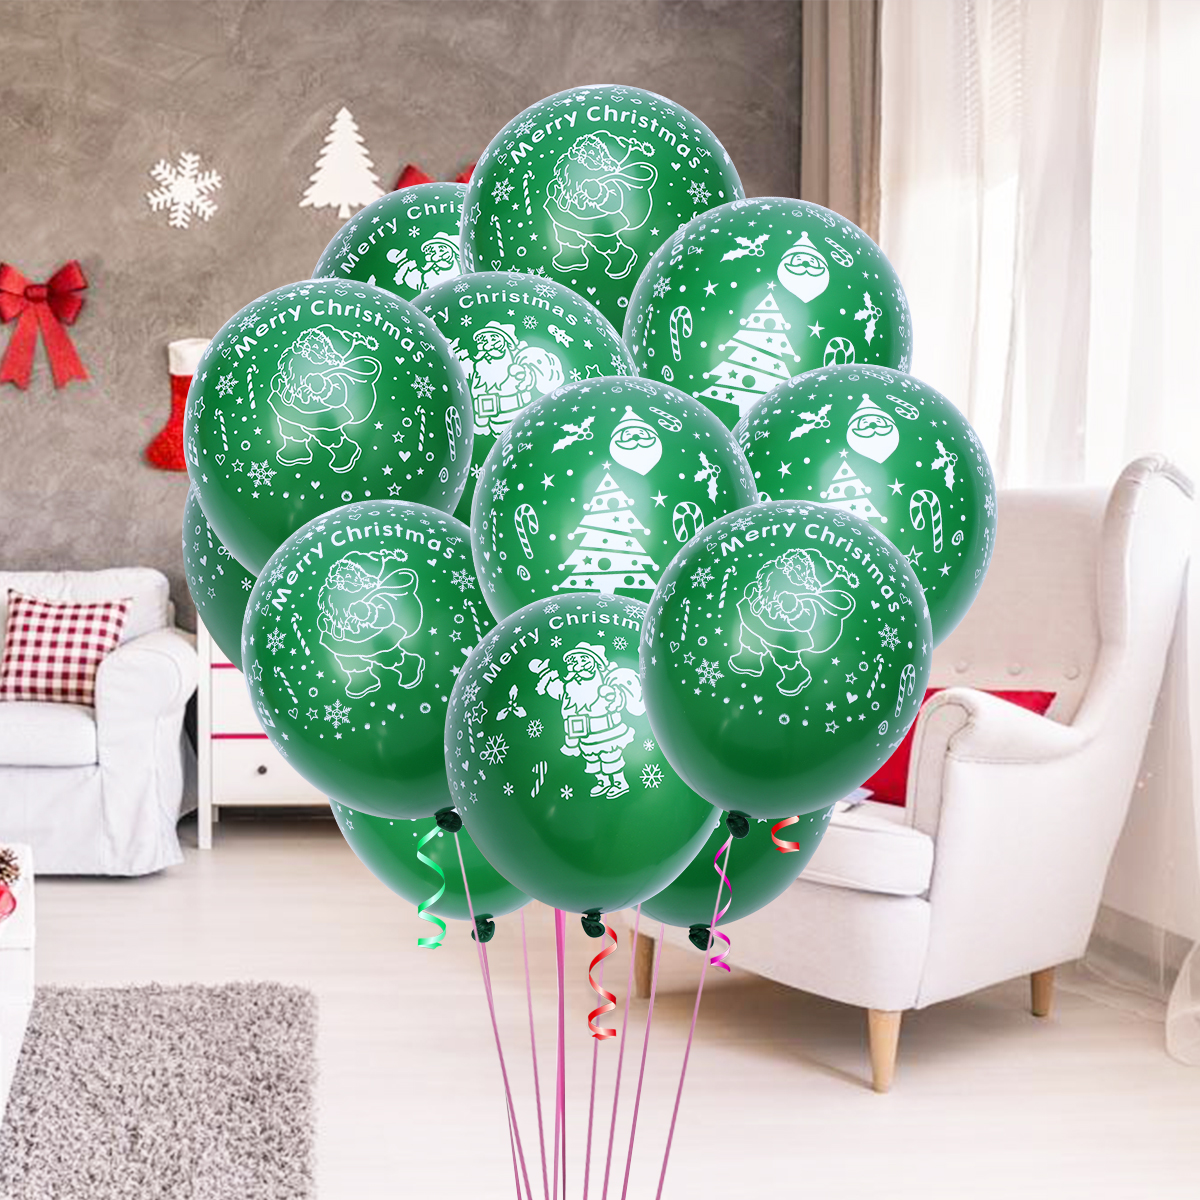 100 Pcs 12 Inch Green Color Christmas Party Balloon Interior Decoration Santa Claus Latex Balloons